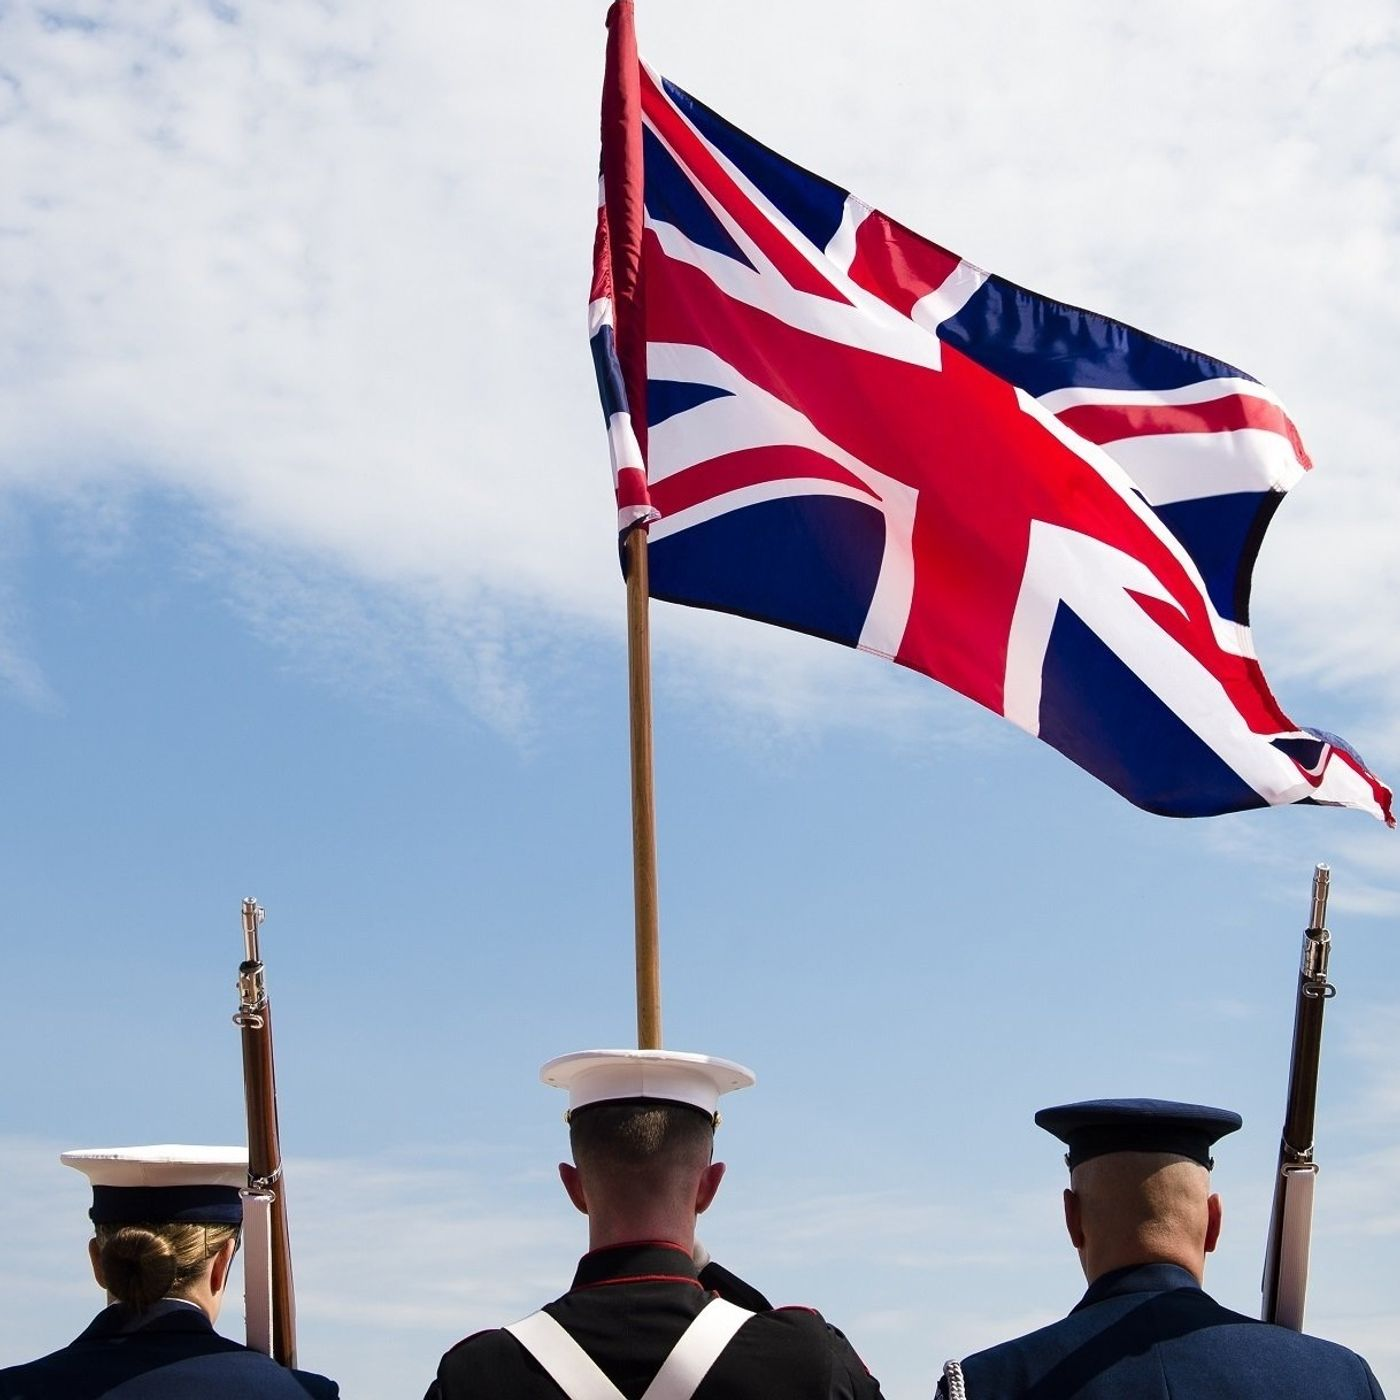 Special Episode: #VEDay75 commemorations music mix with Van Alen for #SkillsWorldLIVE